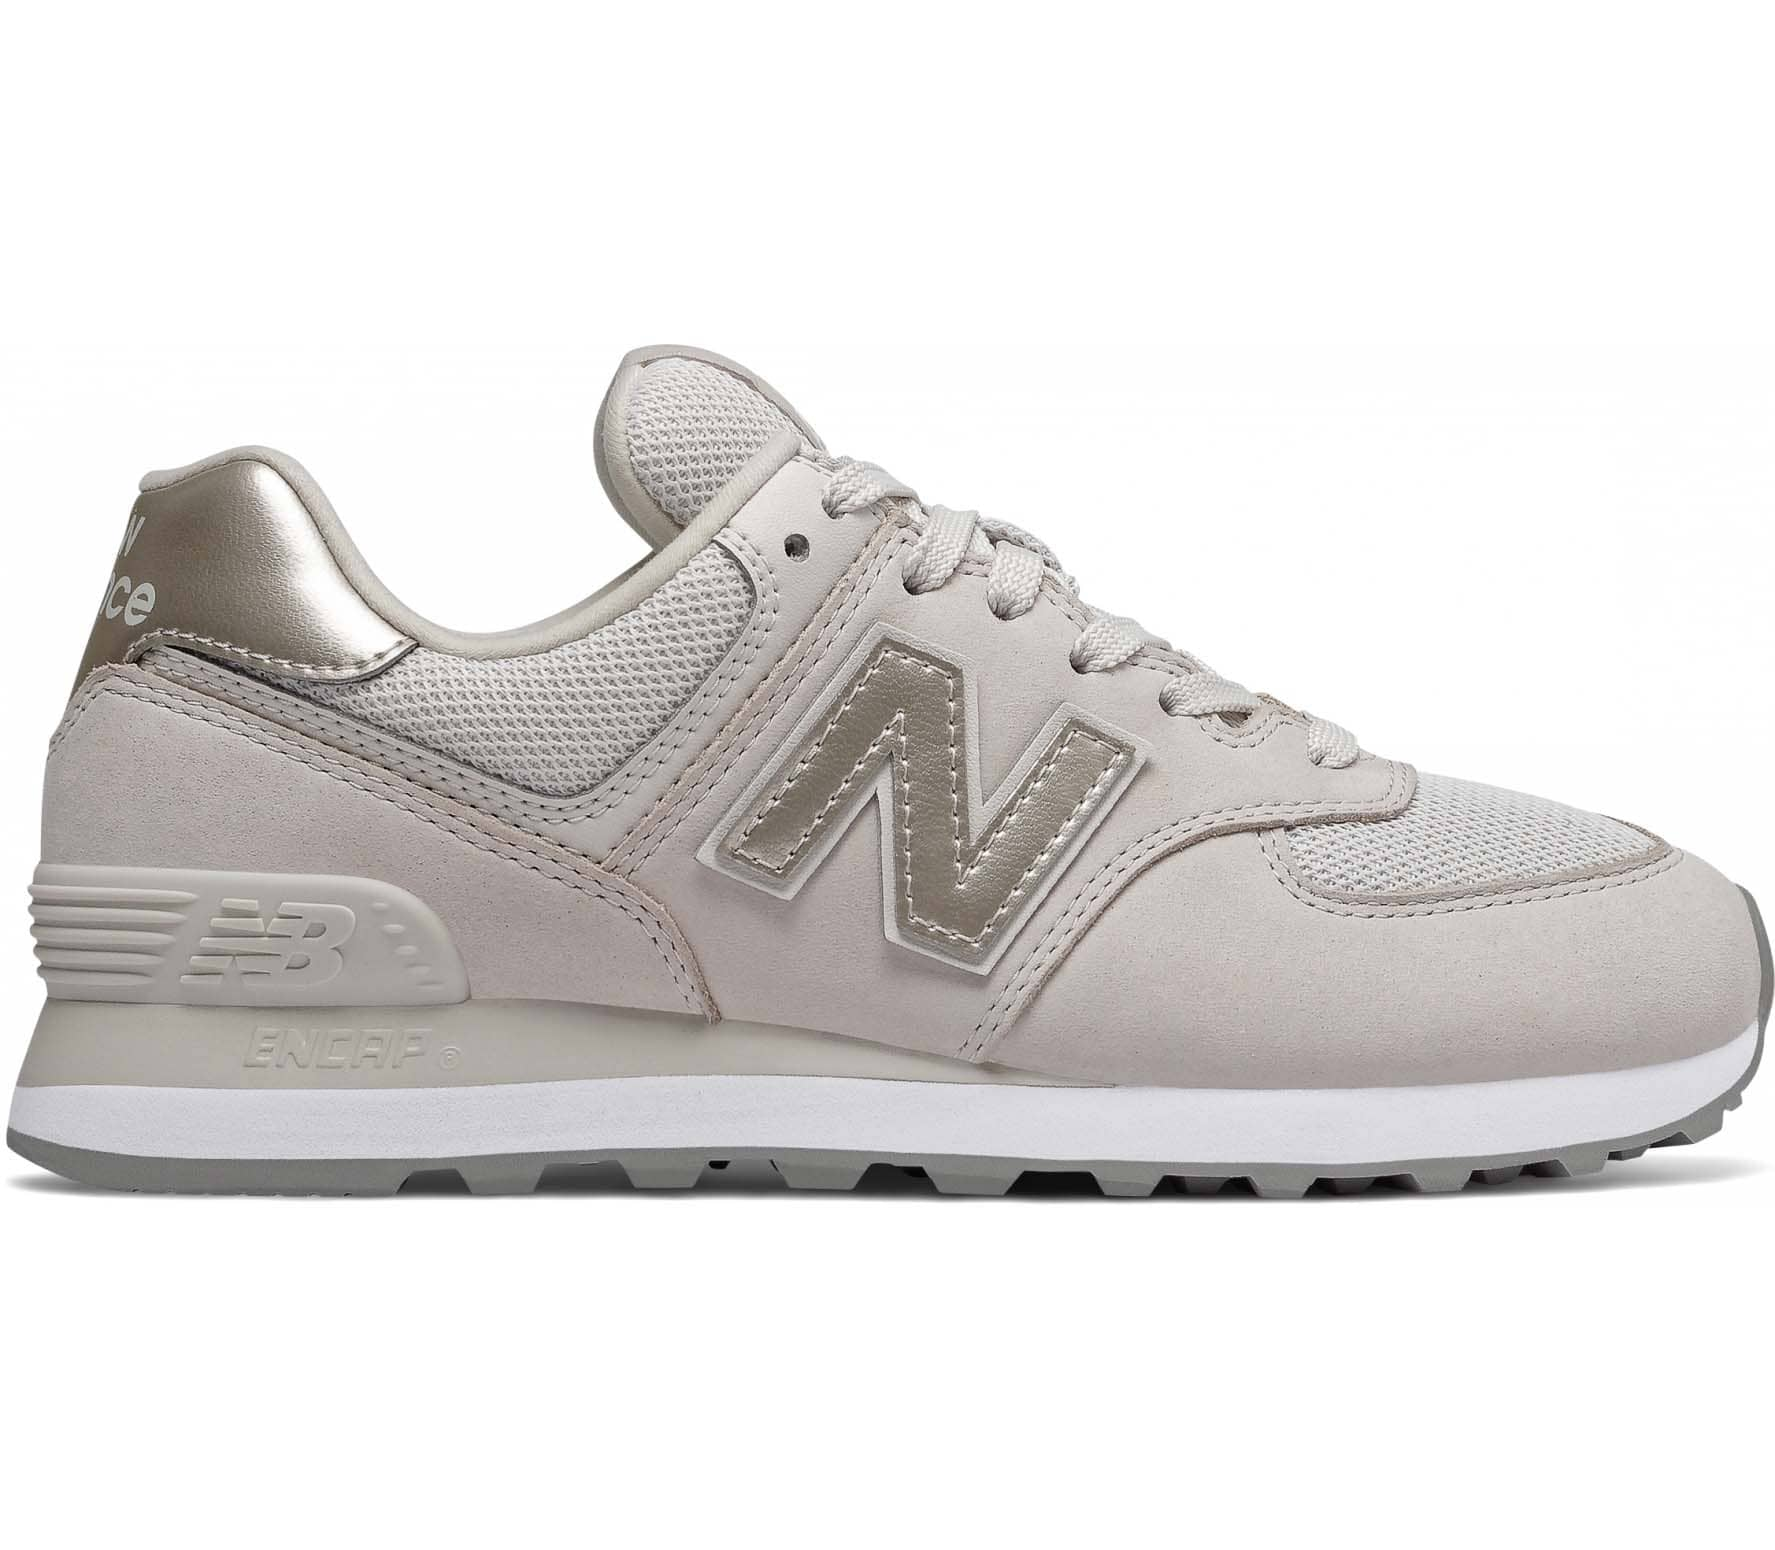 New Balance 574 Dames Sneakers wit